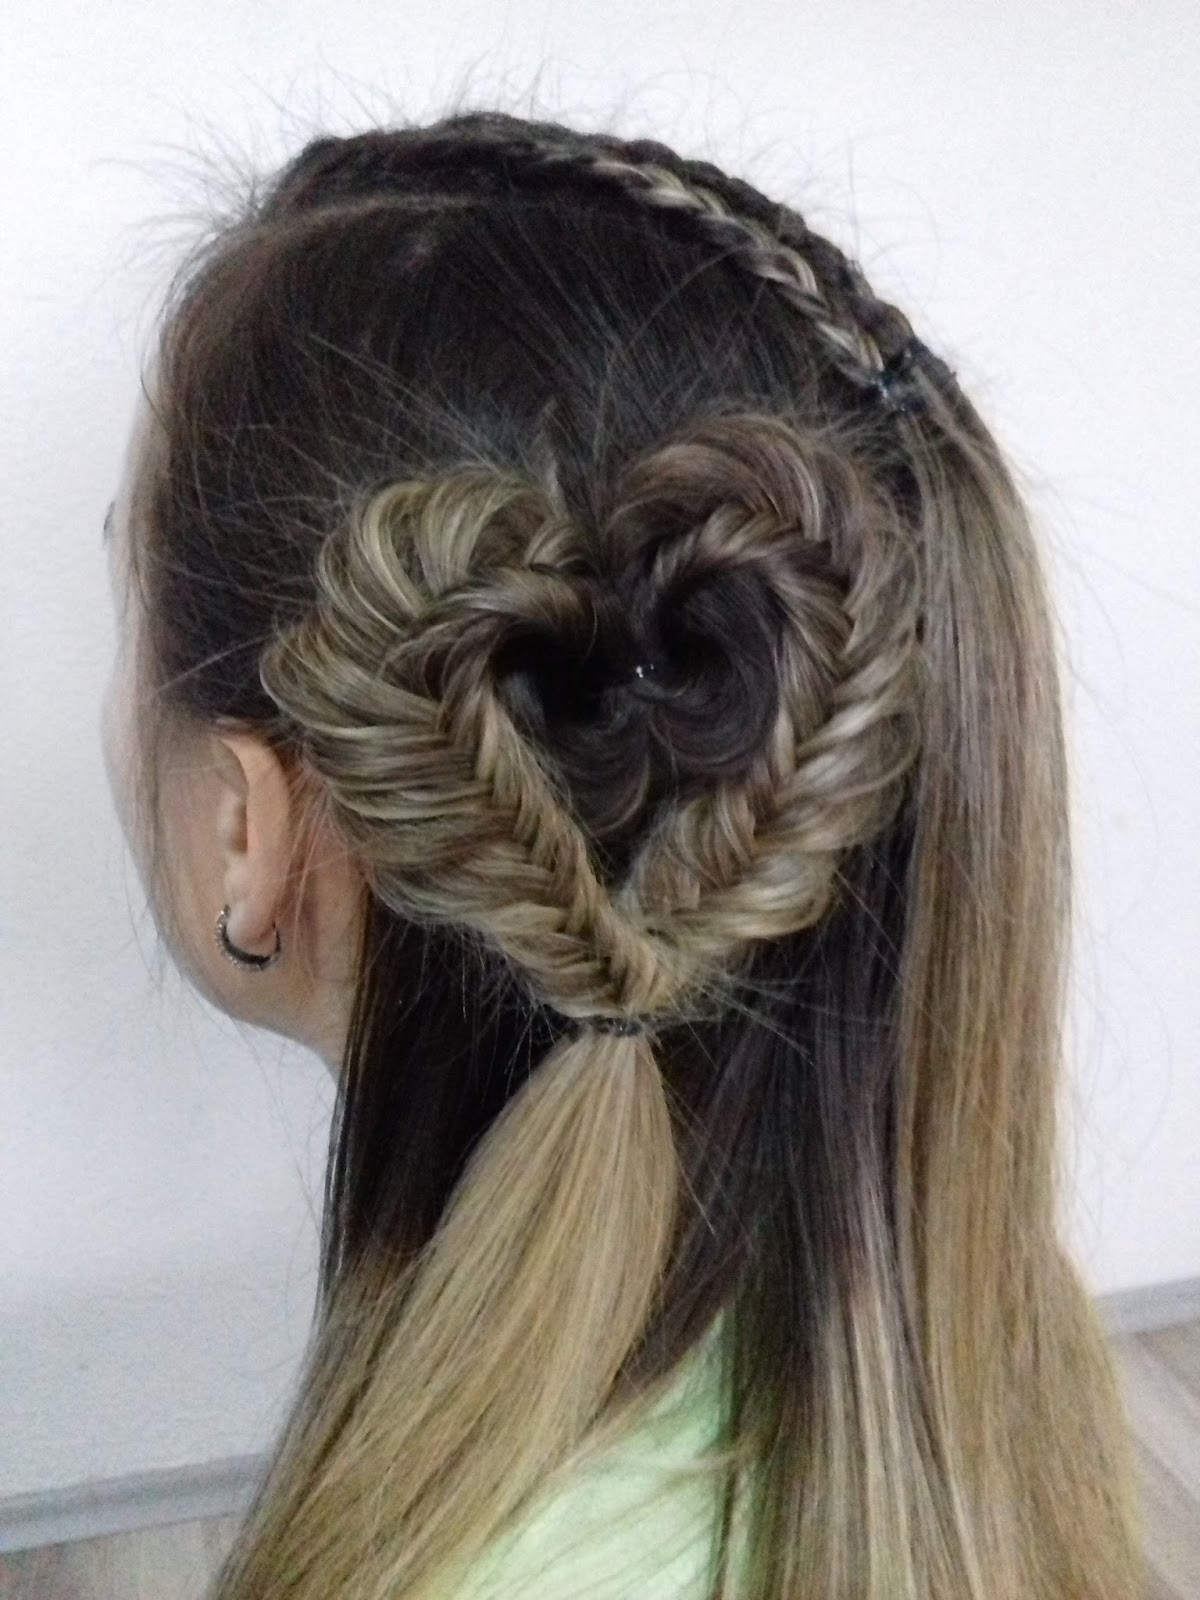 Latest Heart Shaped Fishtail Under Braid Hairstyles Inside Fashionable Hair Braids: Heart Braided Hairstyles (View 16 of 20)